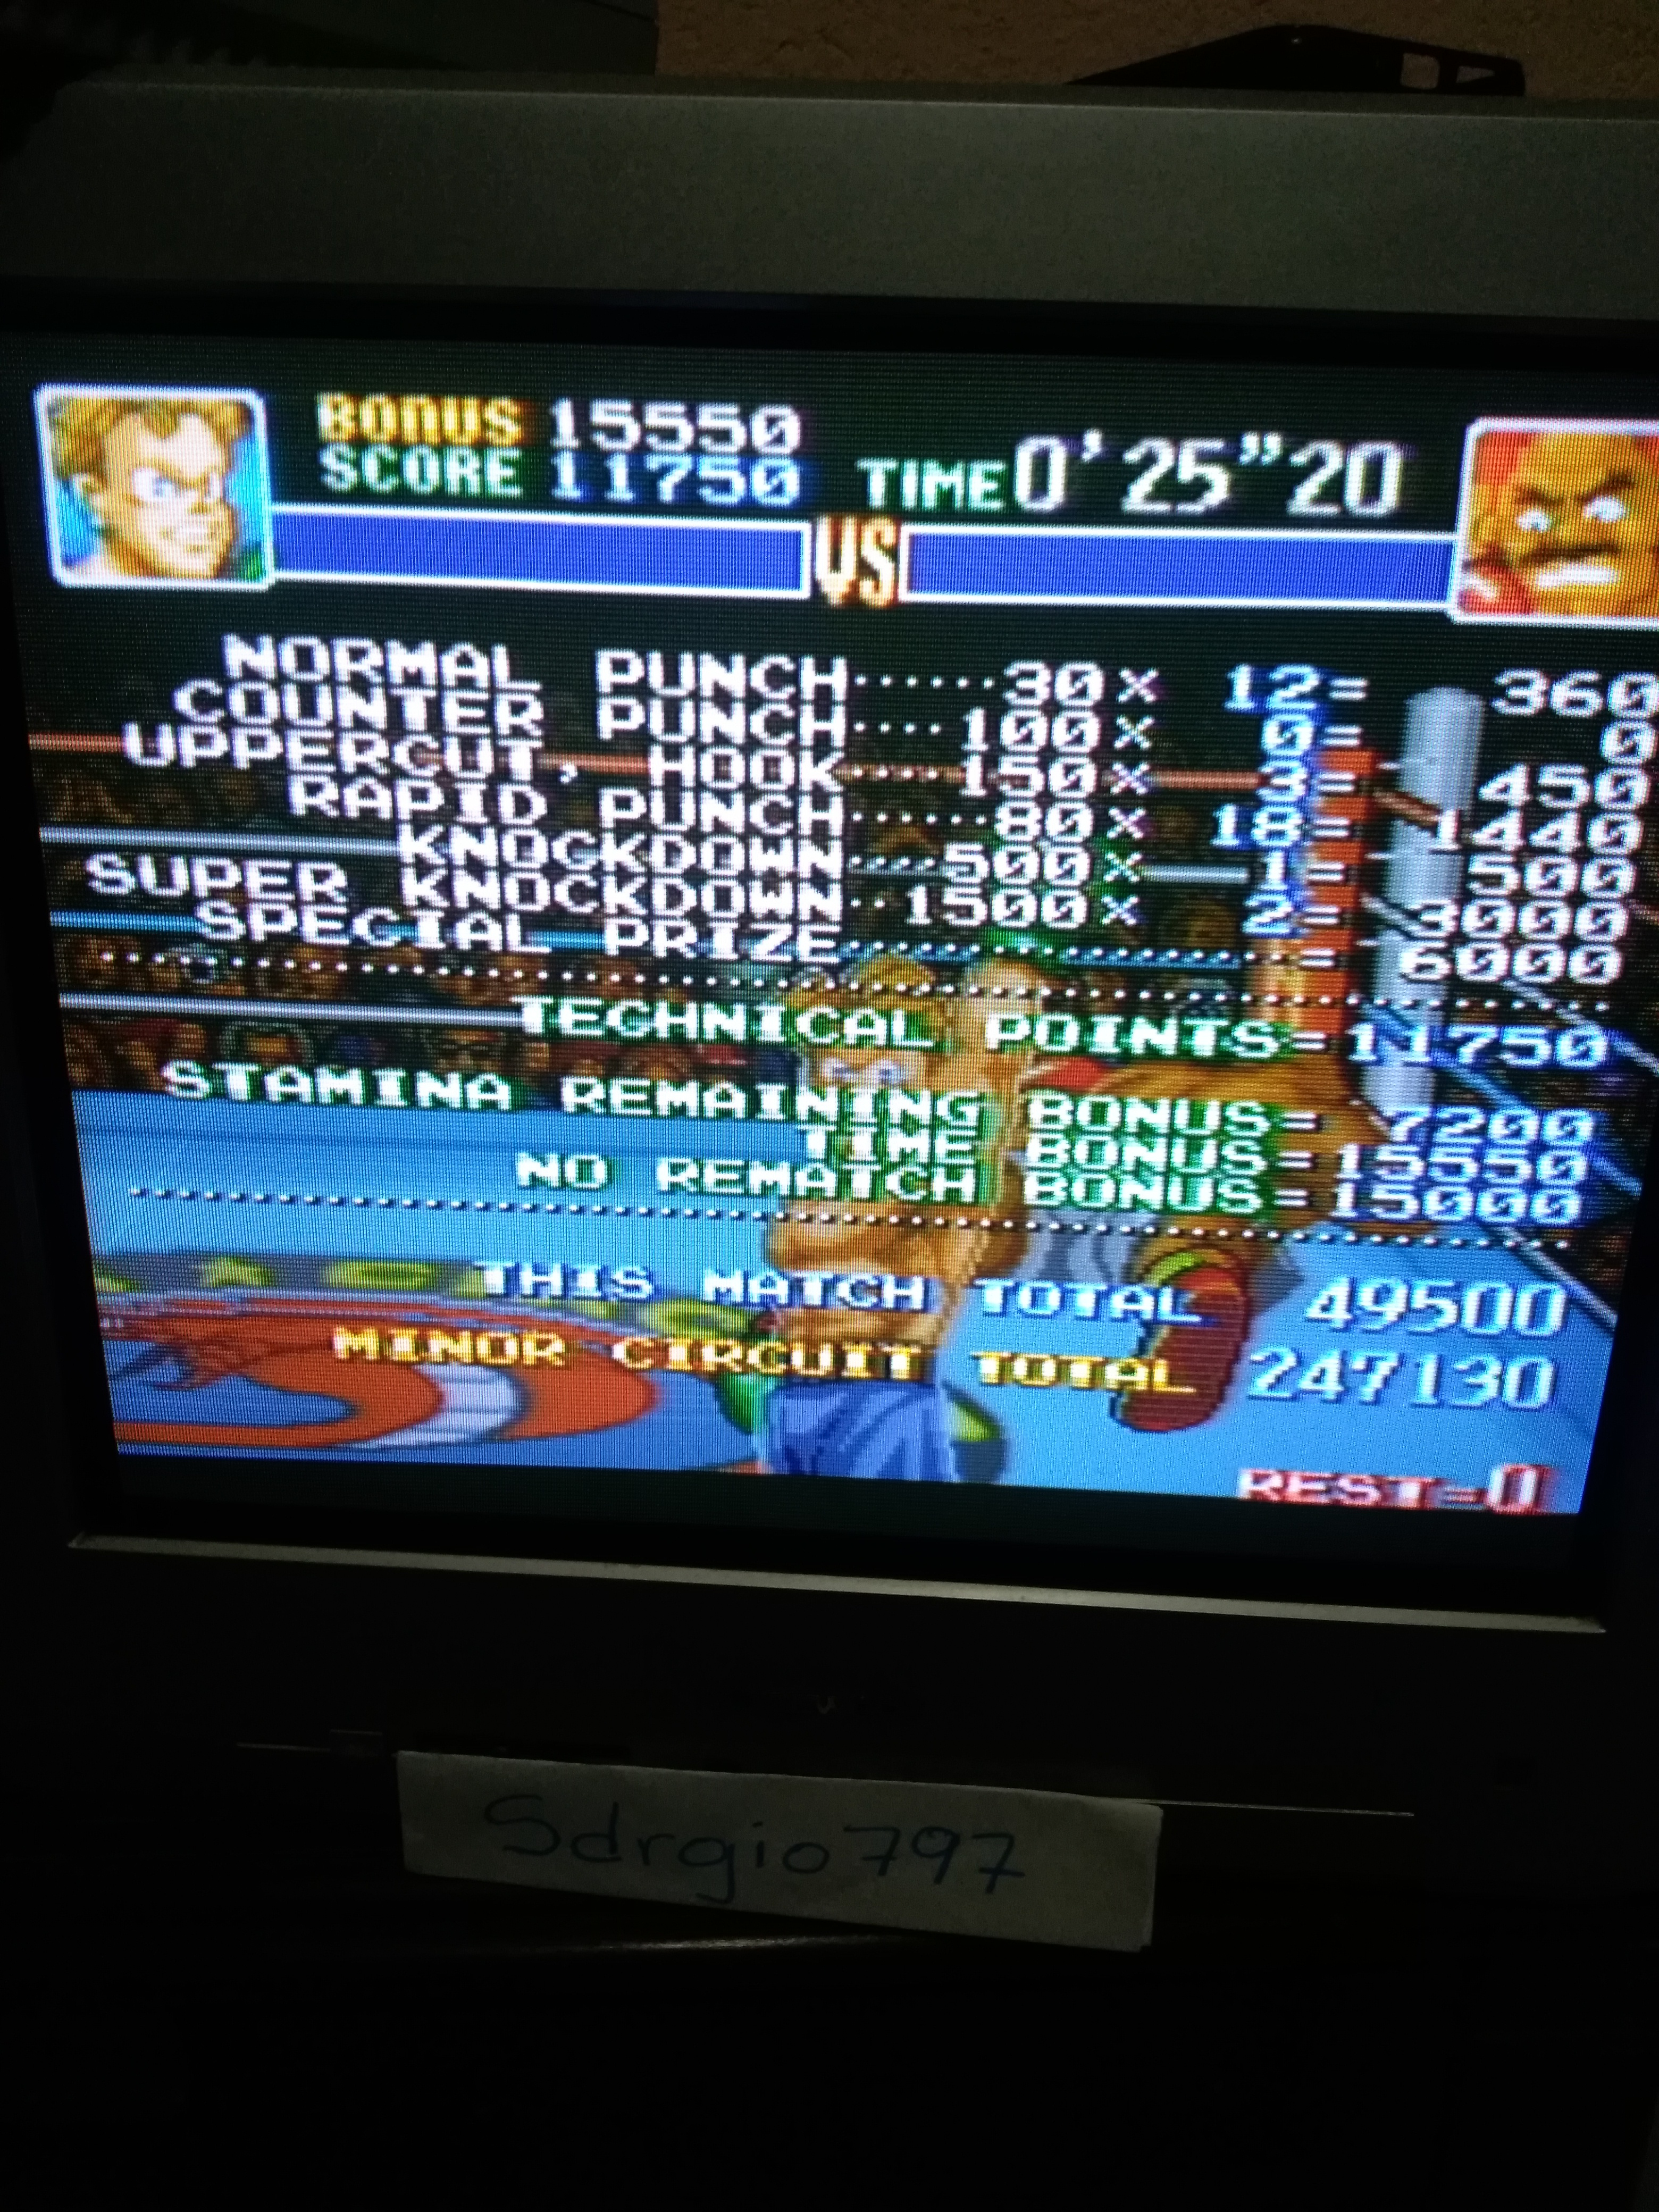 Sdrgio797: Super Punch-Out!! [Minor Circuit] (SNES/Super Famicom) 247,130 points on 2020-07-24 03:30:04